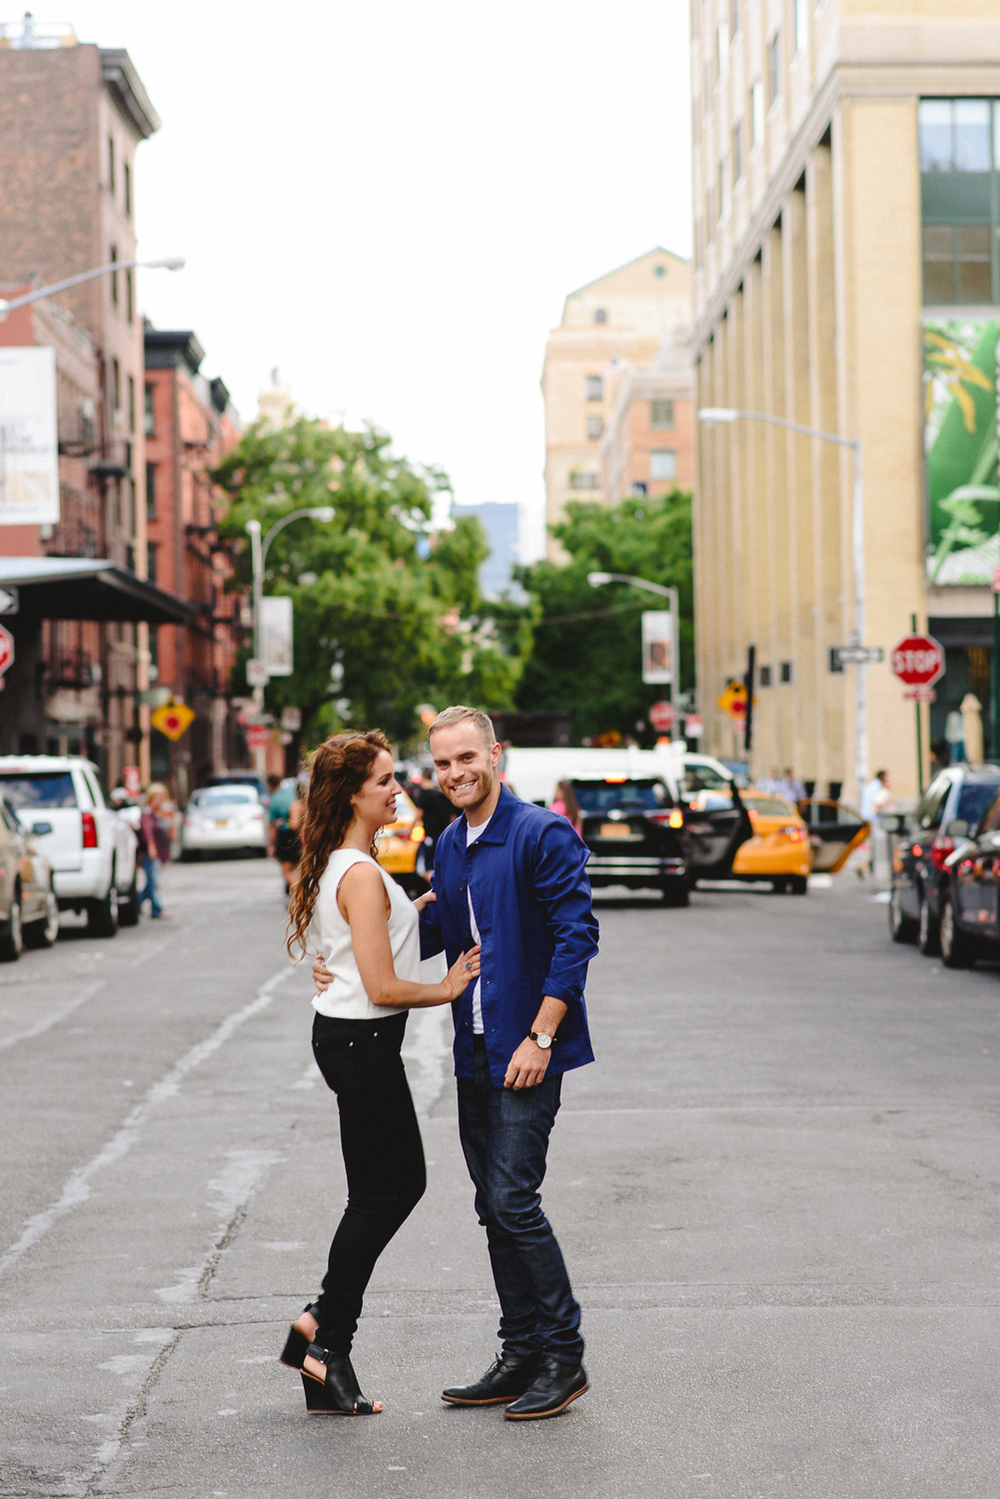 Arius-NYC-Engagement-Photographer-Non-Cheesy-Meat-Packing-Laid-Back-10.jpg